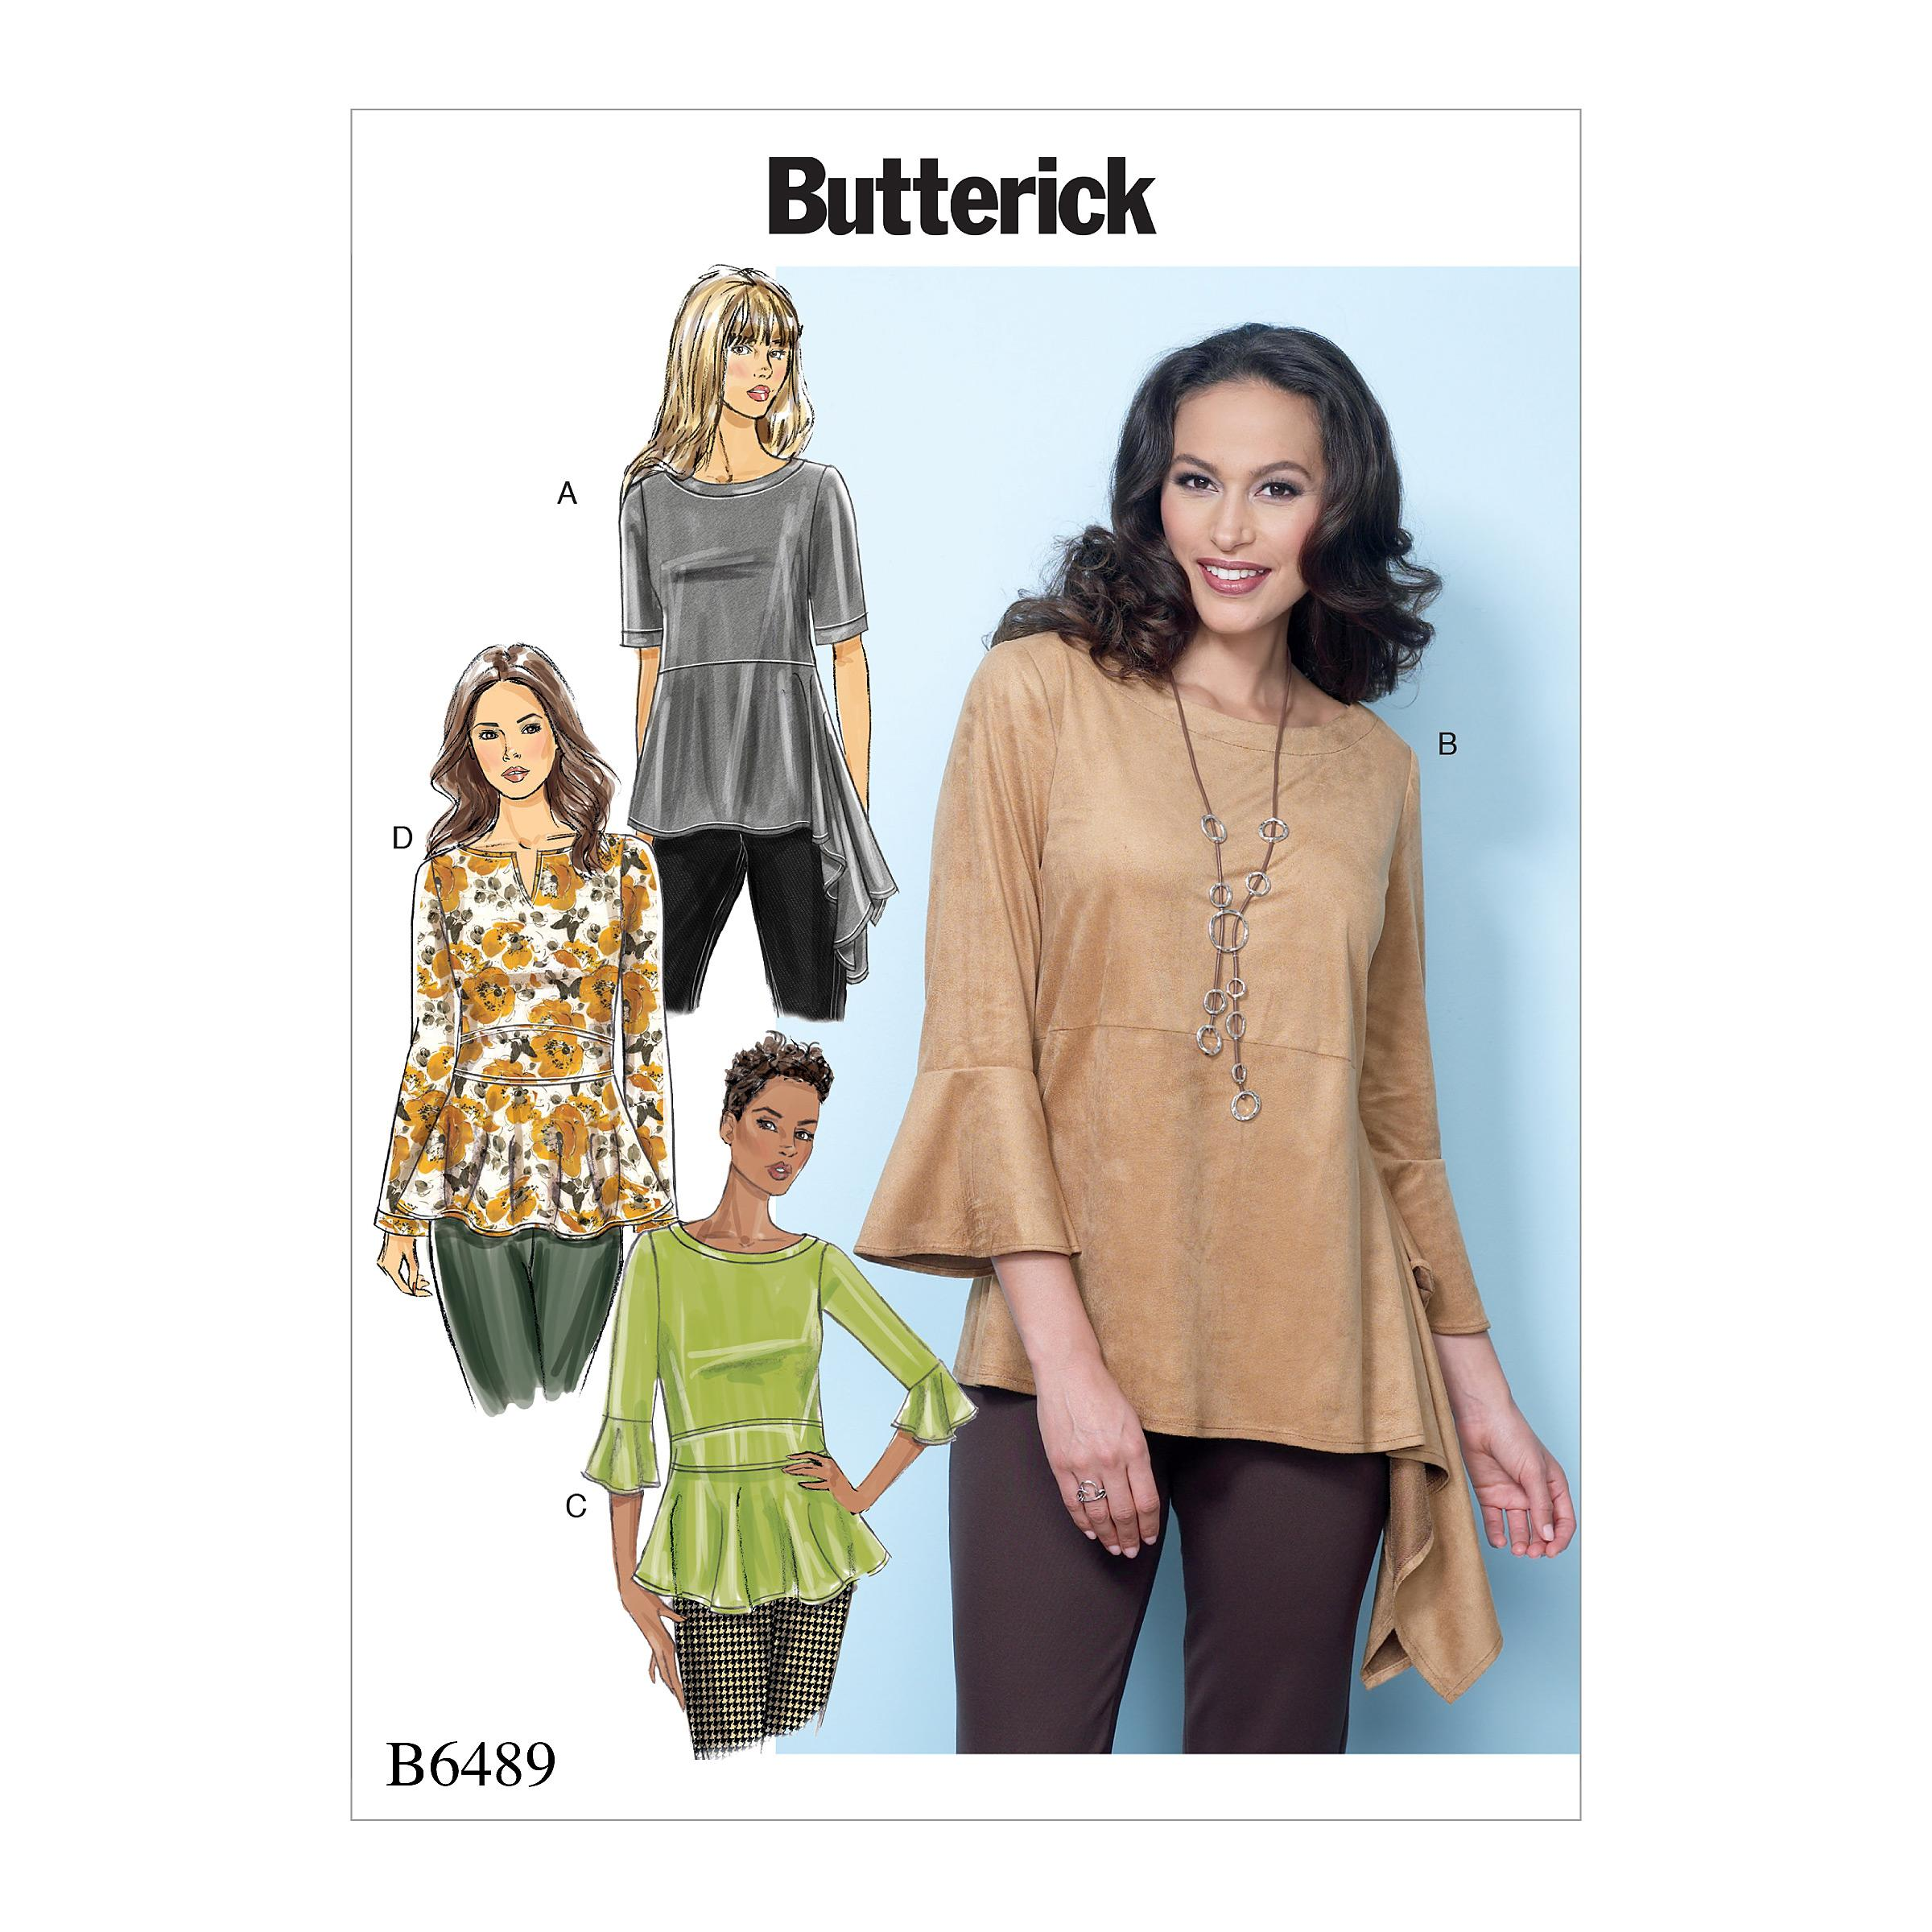 Butterick B6489 Misses' Pullover Tops with Sleeve and Peplum Variations